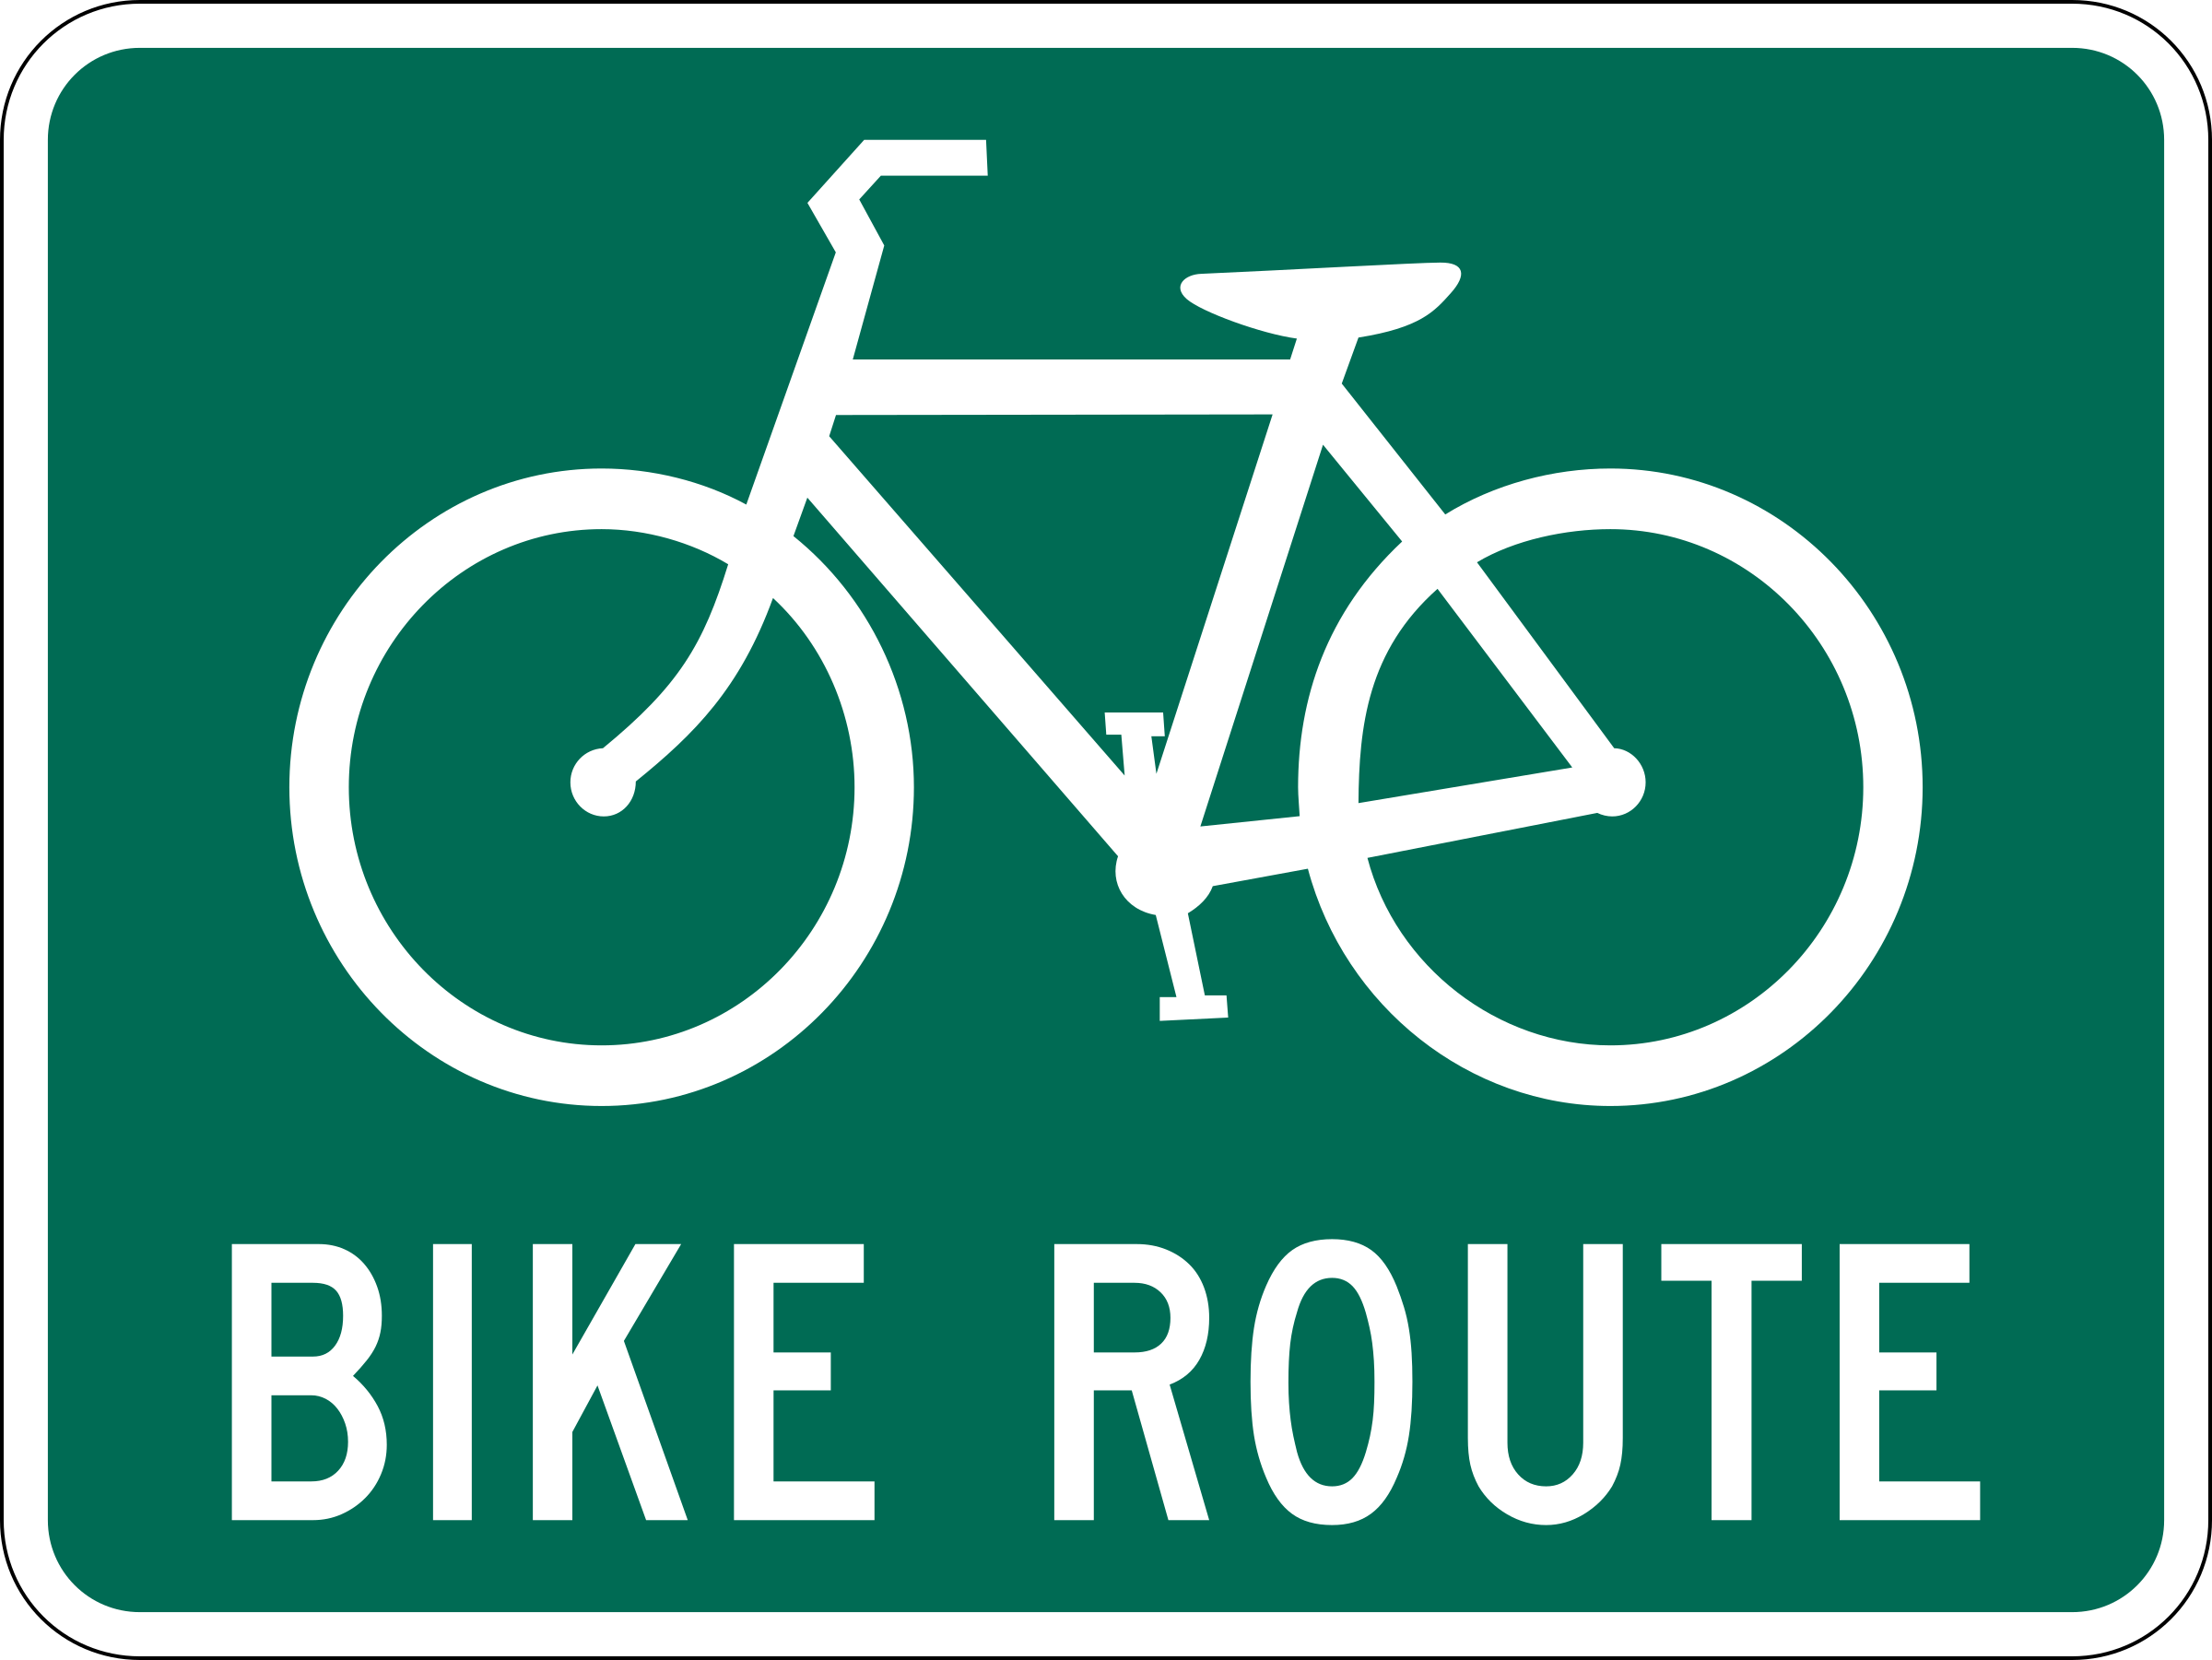 Bike Route Clipart.